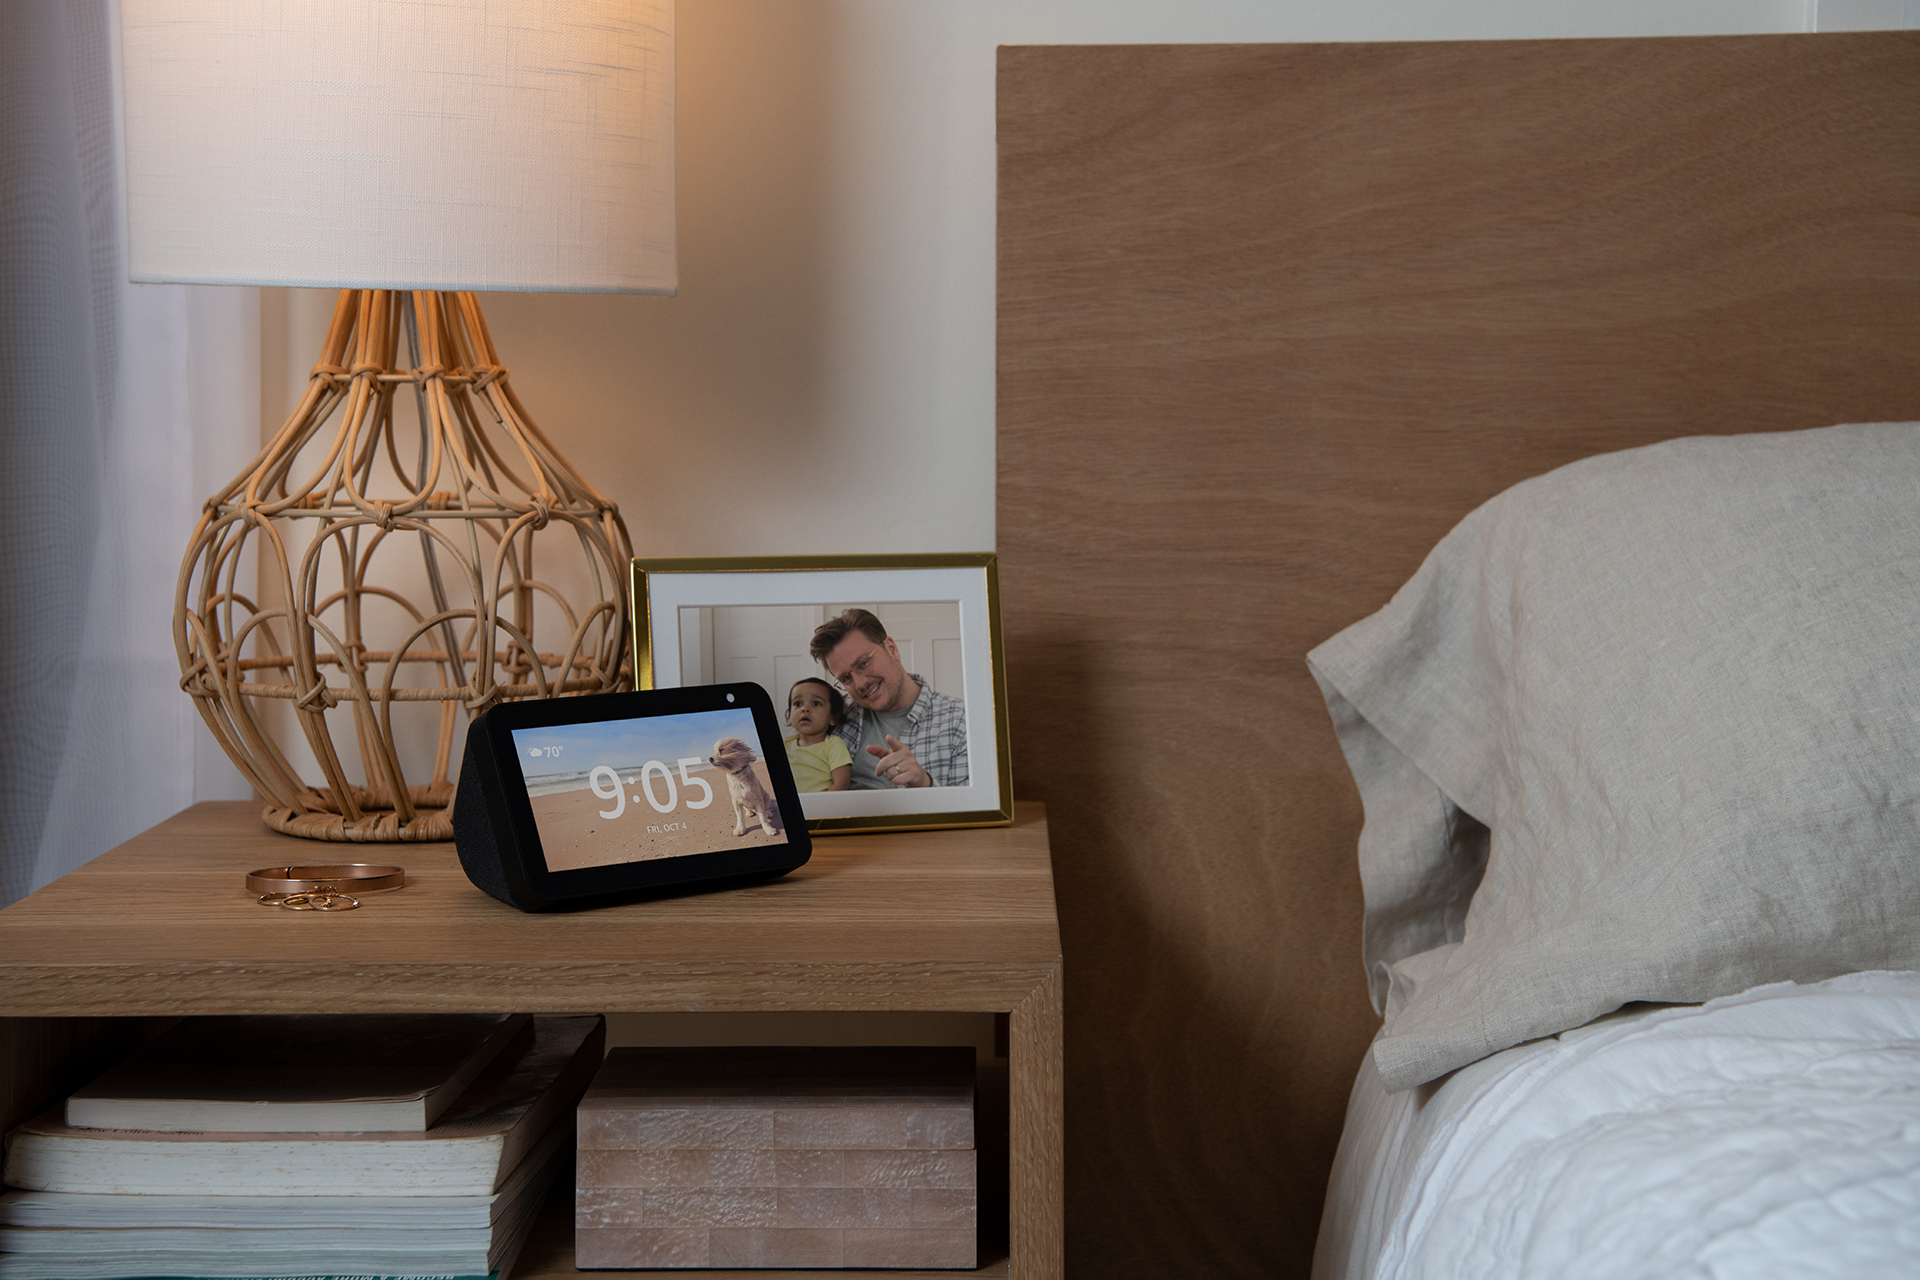 Most Amazon devices drop to record-low prices for Prime Day – Yahoo News Australia